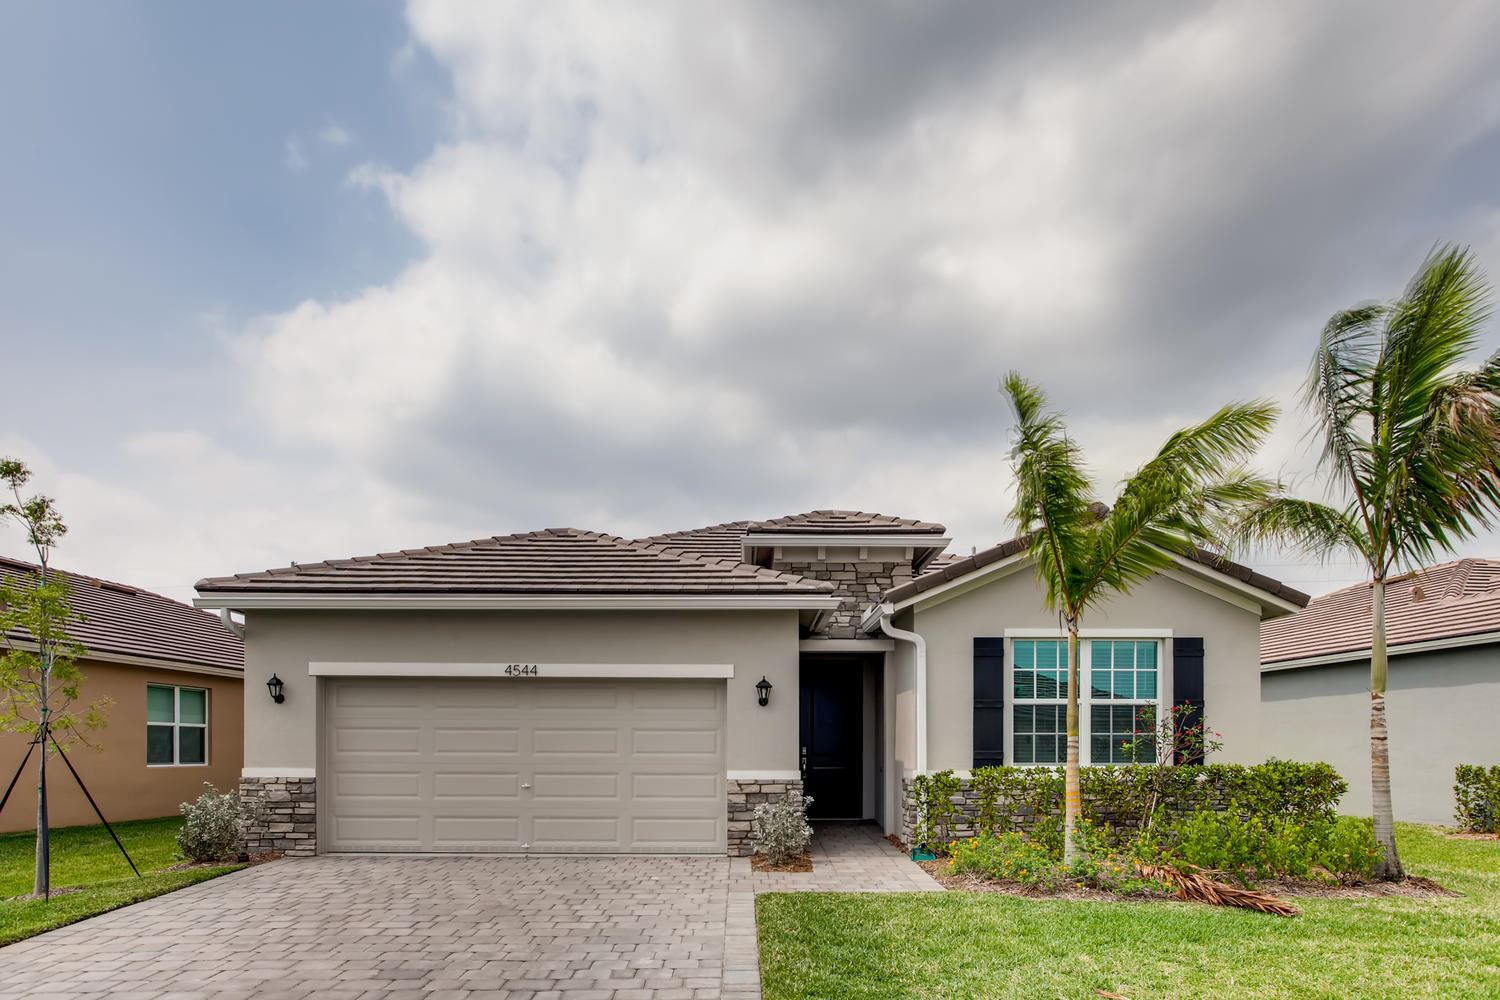 4544 NW King Court, Jensen Beach, FL 34957 - #: RX-10601978